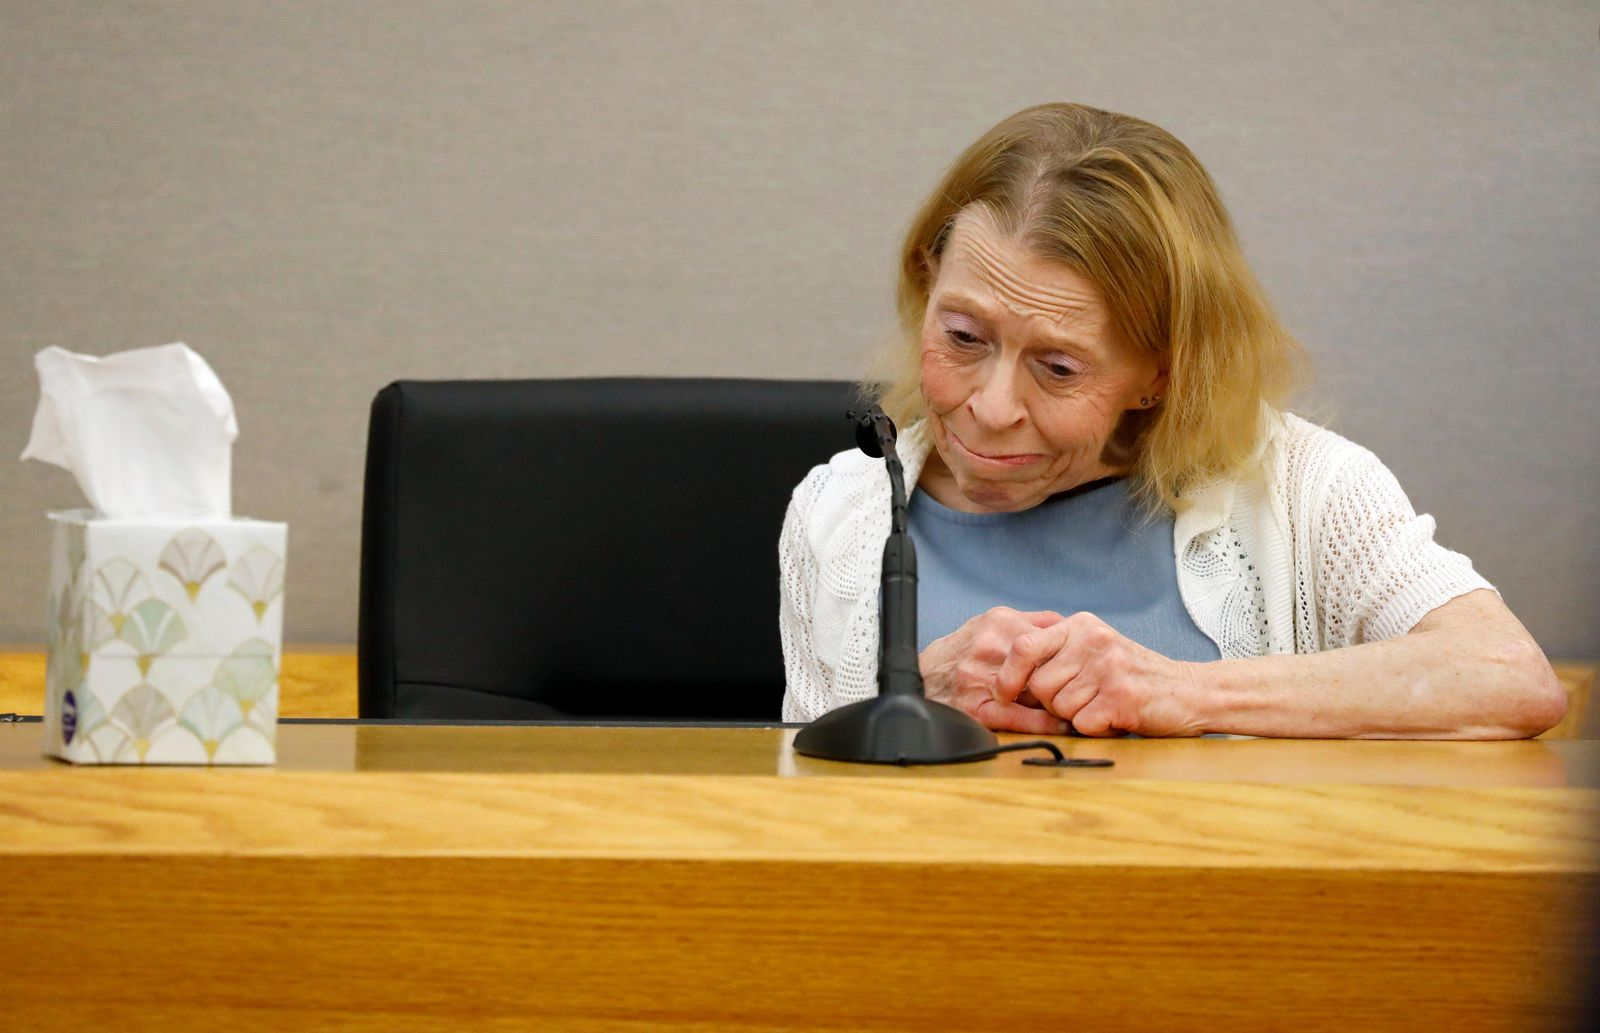 Karen Guyger takes a moment to herself on the witness stand during the sentencing phase of her daughter Amber Guyger's trial, at the Frank Crowley Courts Building in Dallas, Wednesday, Oct. 2, 2019. Guyger, a former Dallas police officer, was convicted of murder Tuesday in the killing of Botham Jean and faces a sentence that could range from five years to life in prison or be lowered to as little as two years if the jury decides the shooting was a crime of sudden passion. (Tom Fox/The Dallas Morning News via AP, Pool)